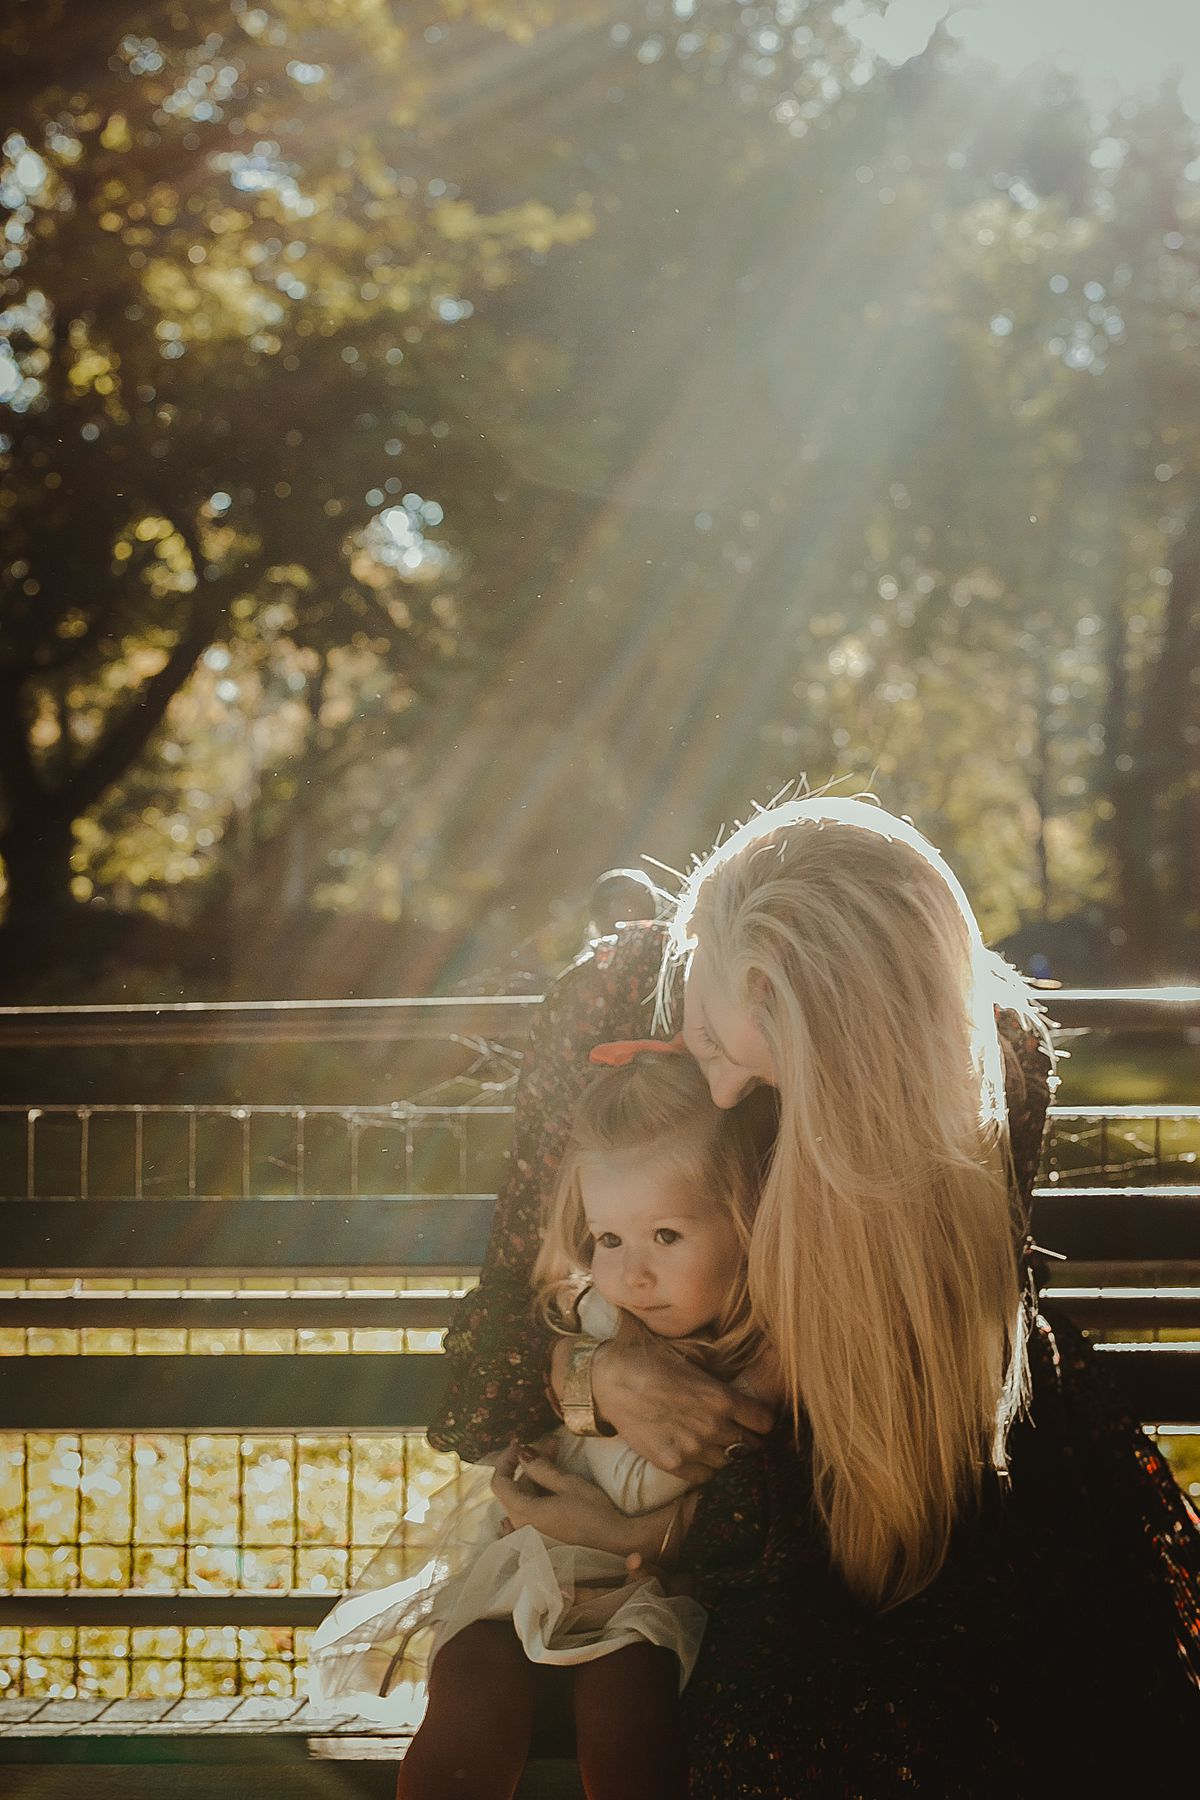 mom and daughter enjoying cuddles and sun streams in behind them sitting on park bench in central park nyc. photo by nyc family photographer krystil mcdowall